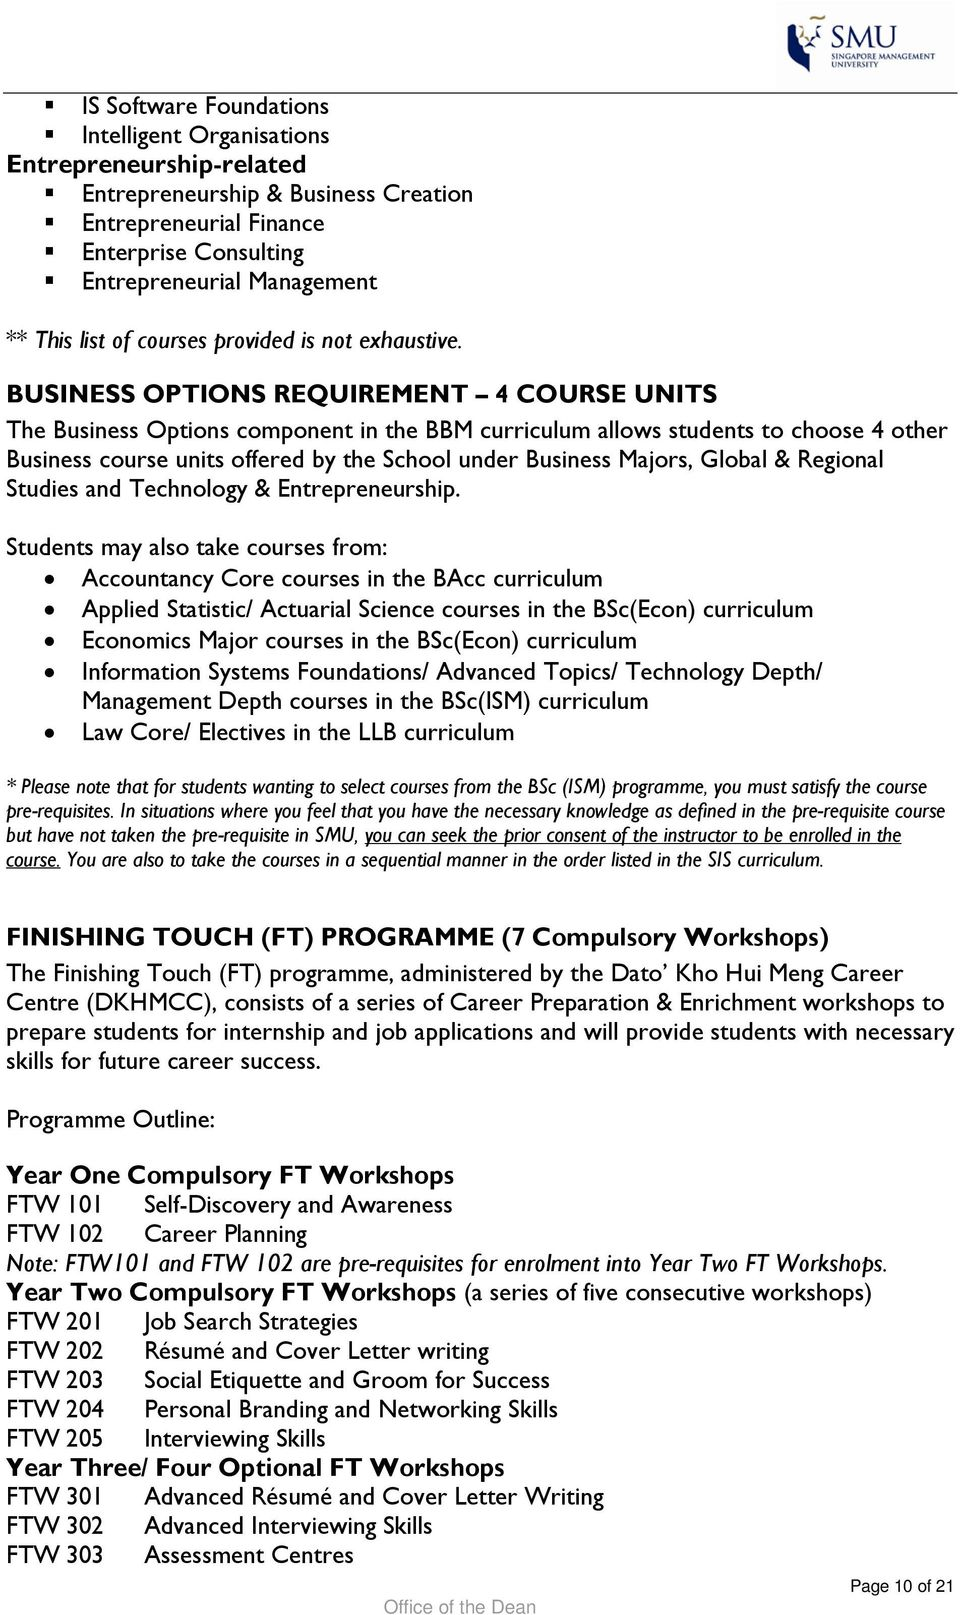 BUSINESS OPTIONS REQUIREMENT 4 COURSE UNITS The Business Options component in the BBM curriculum allows students to choose 4 other Business course units offered by the School under Business Majors,